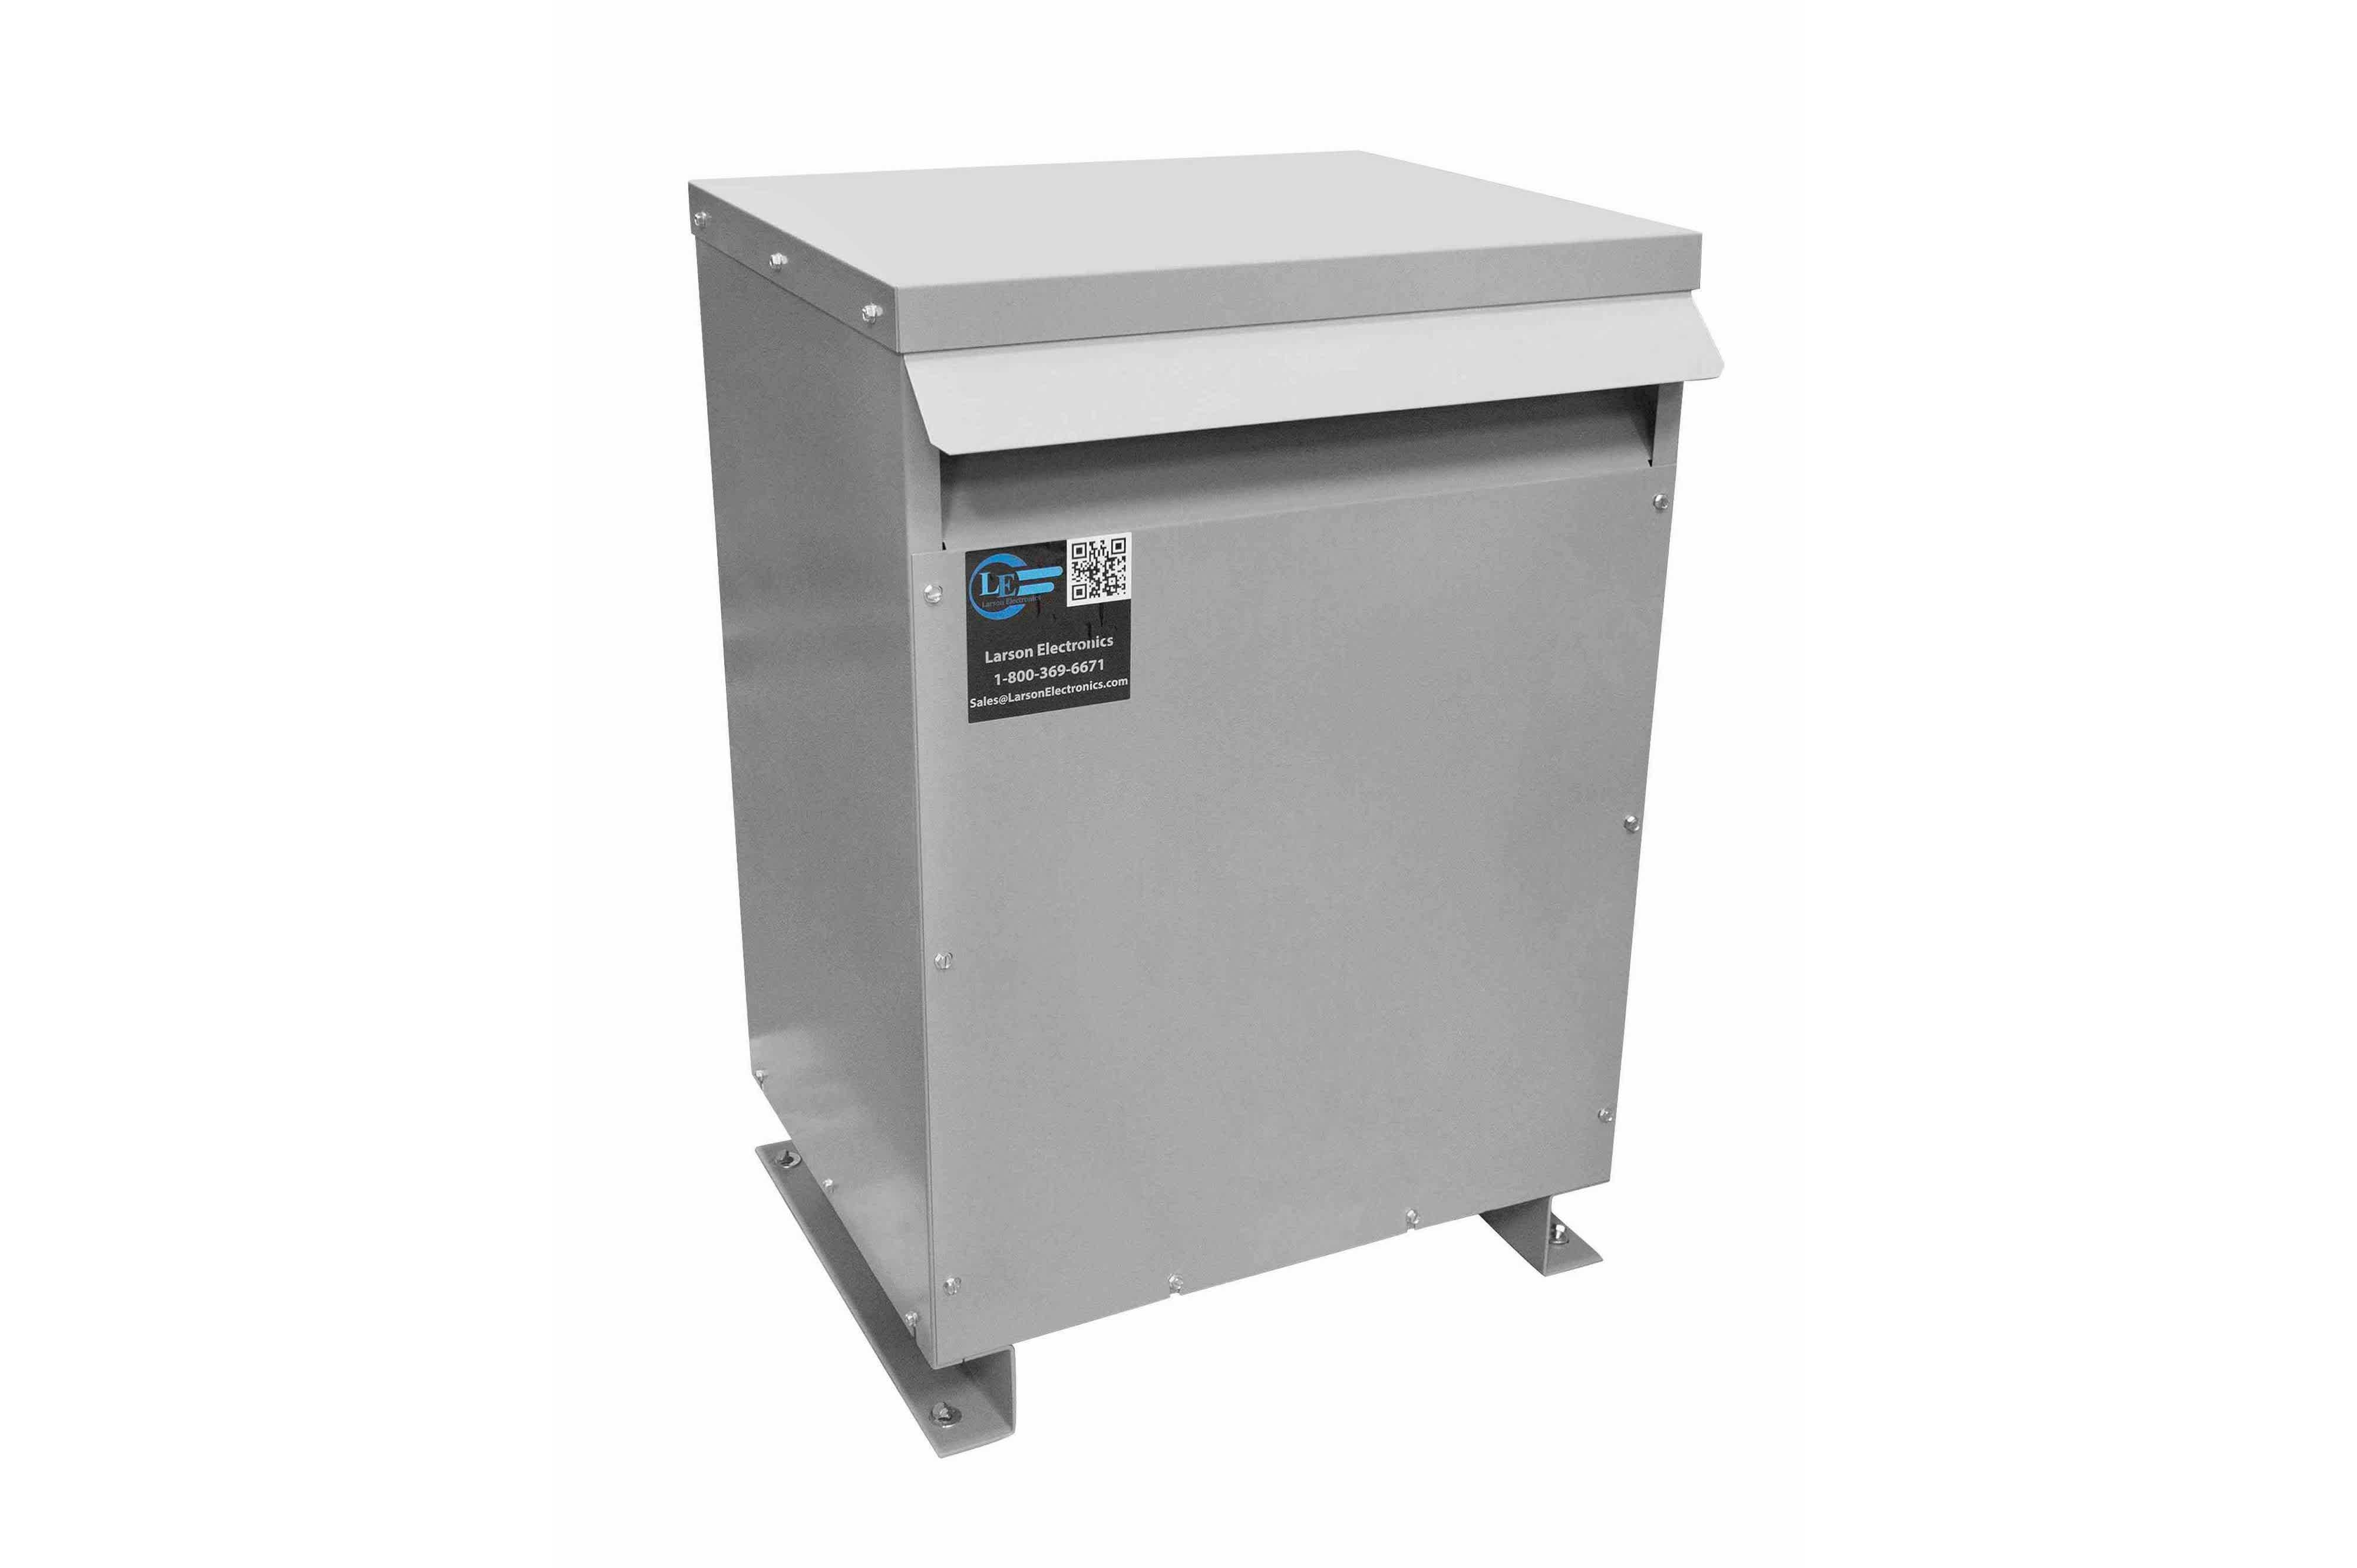 500 kVA 3PH Isolation Transformer, 460V Wye Primary, 600Y/347 Wye-N Secondary, N3R, Ventilated, 60 Hz